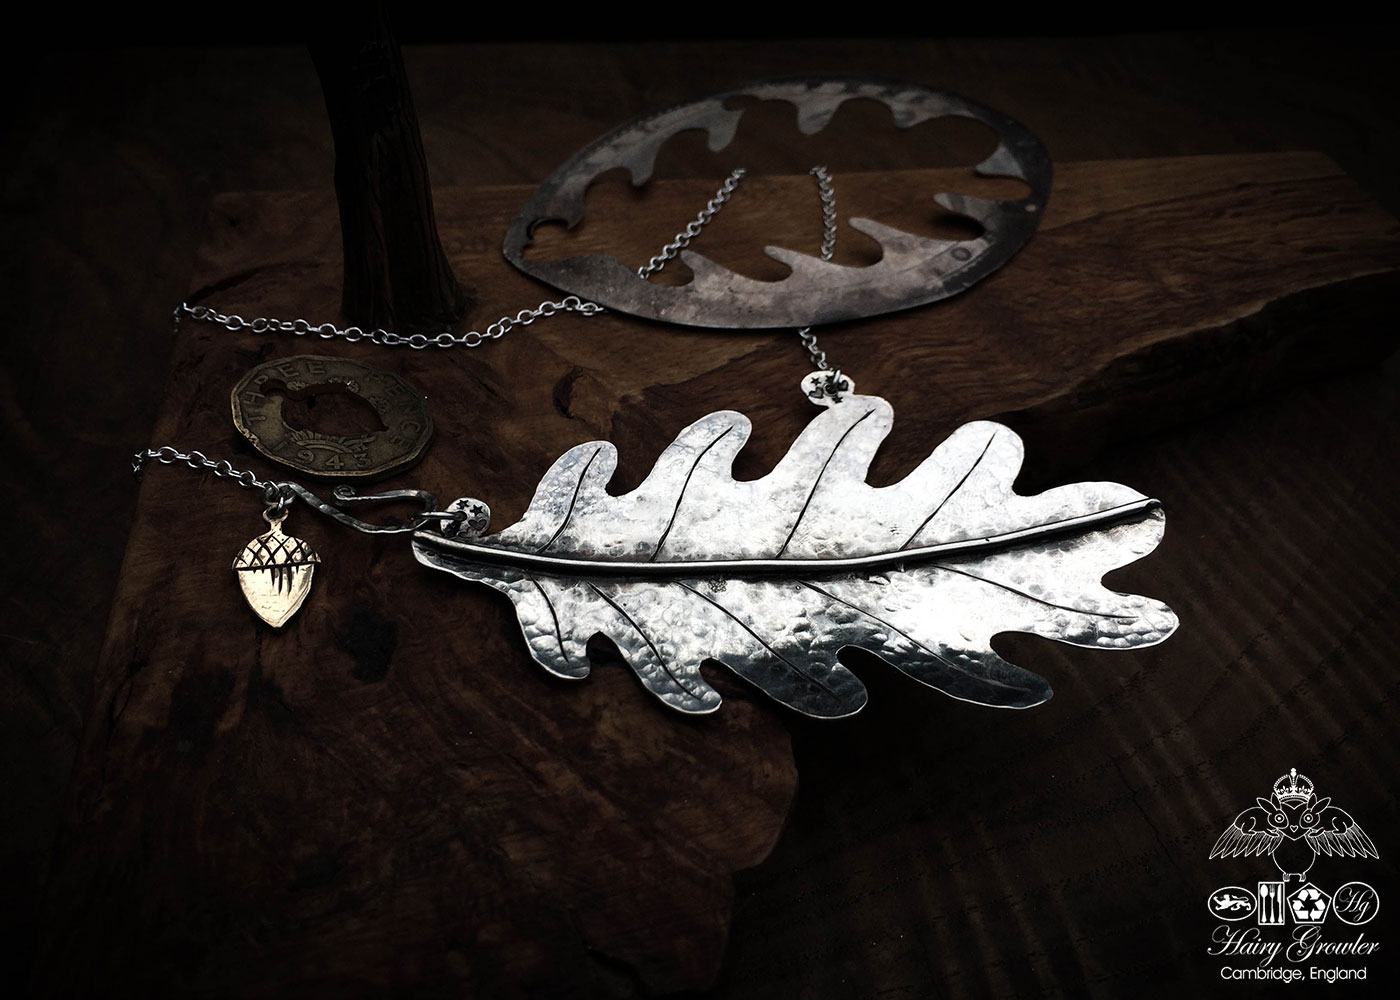 Handcrafted and recycled silver oak leaf necklace made from a silver crown coin